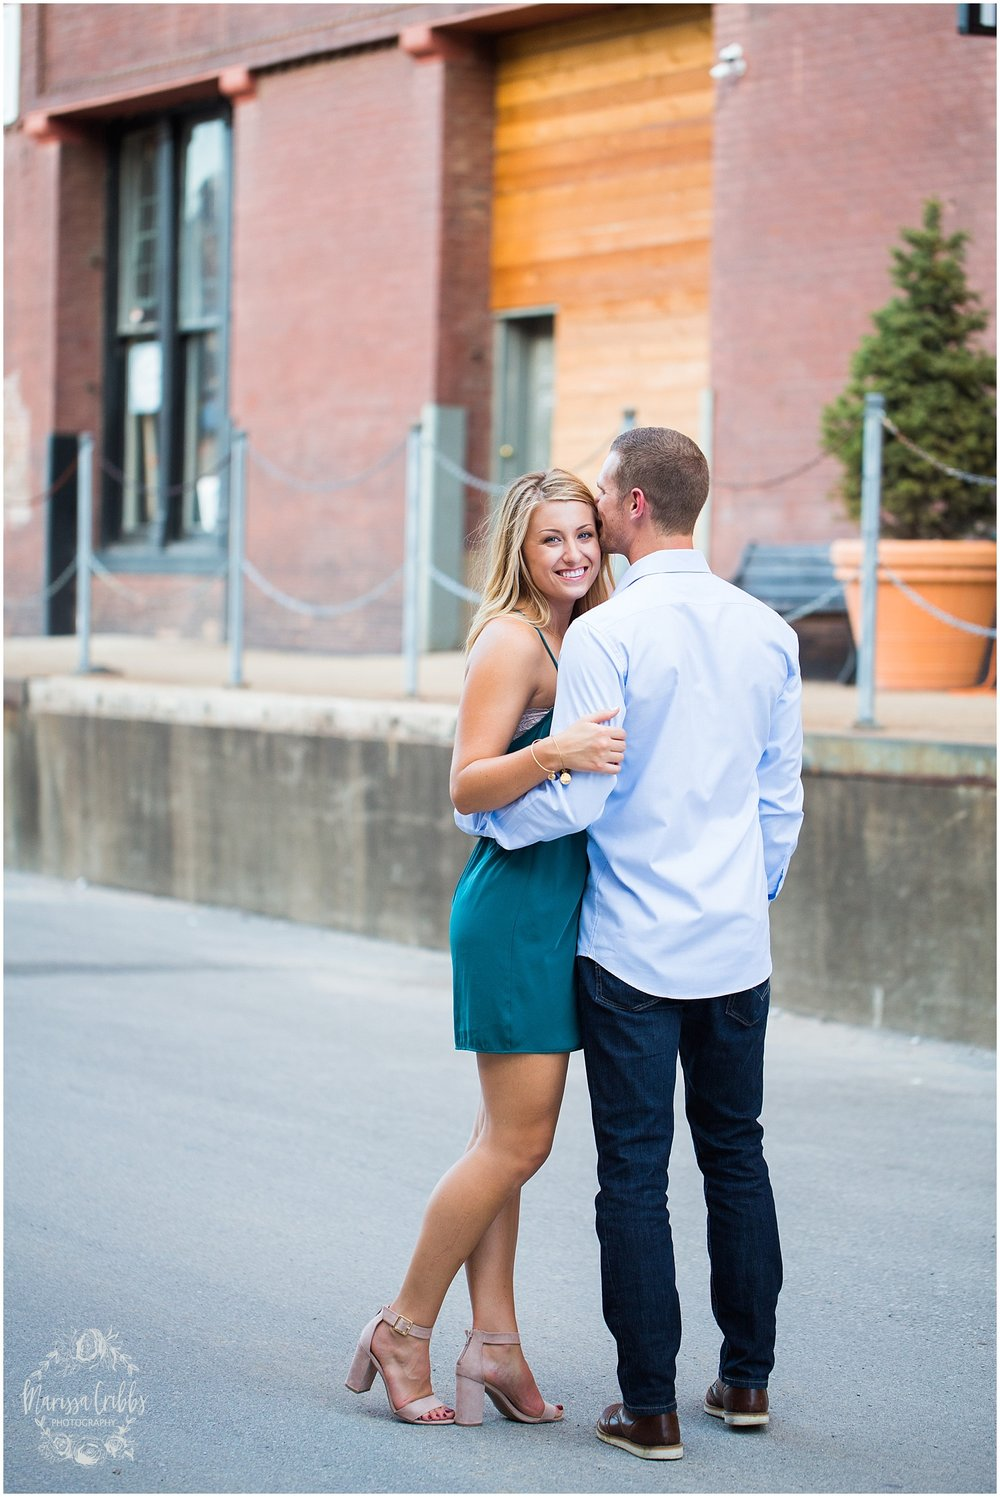 Lindsey & Corey Engagement | KC Engagement Photographer | Marissa Cribbs Photography | West Bottoms | 12th Street Bridge | KC Skyline | Parkville, MO_0842.jpg